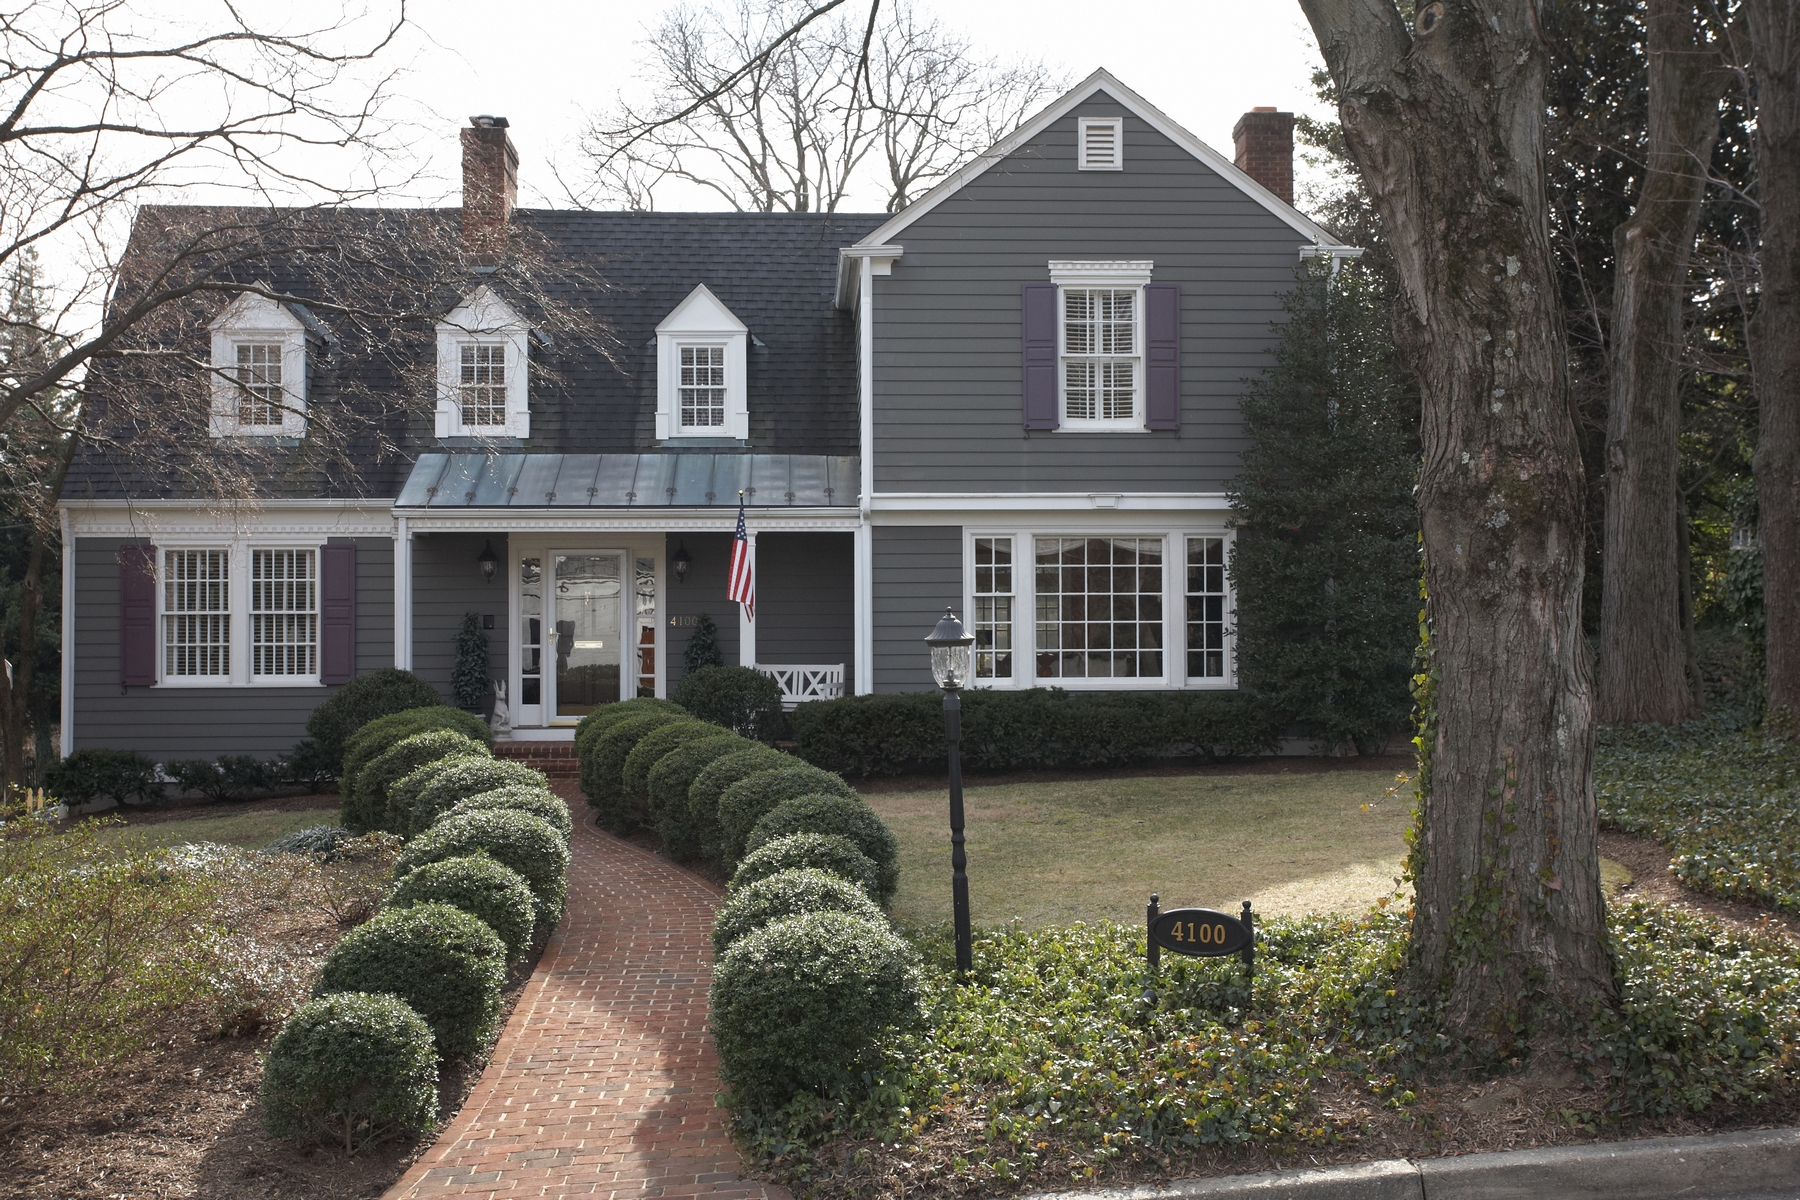 Single Family Home for Sale at Chevy Chase 4100 Everett Street Kensington, Maryland 20895 United States